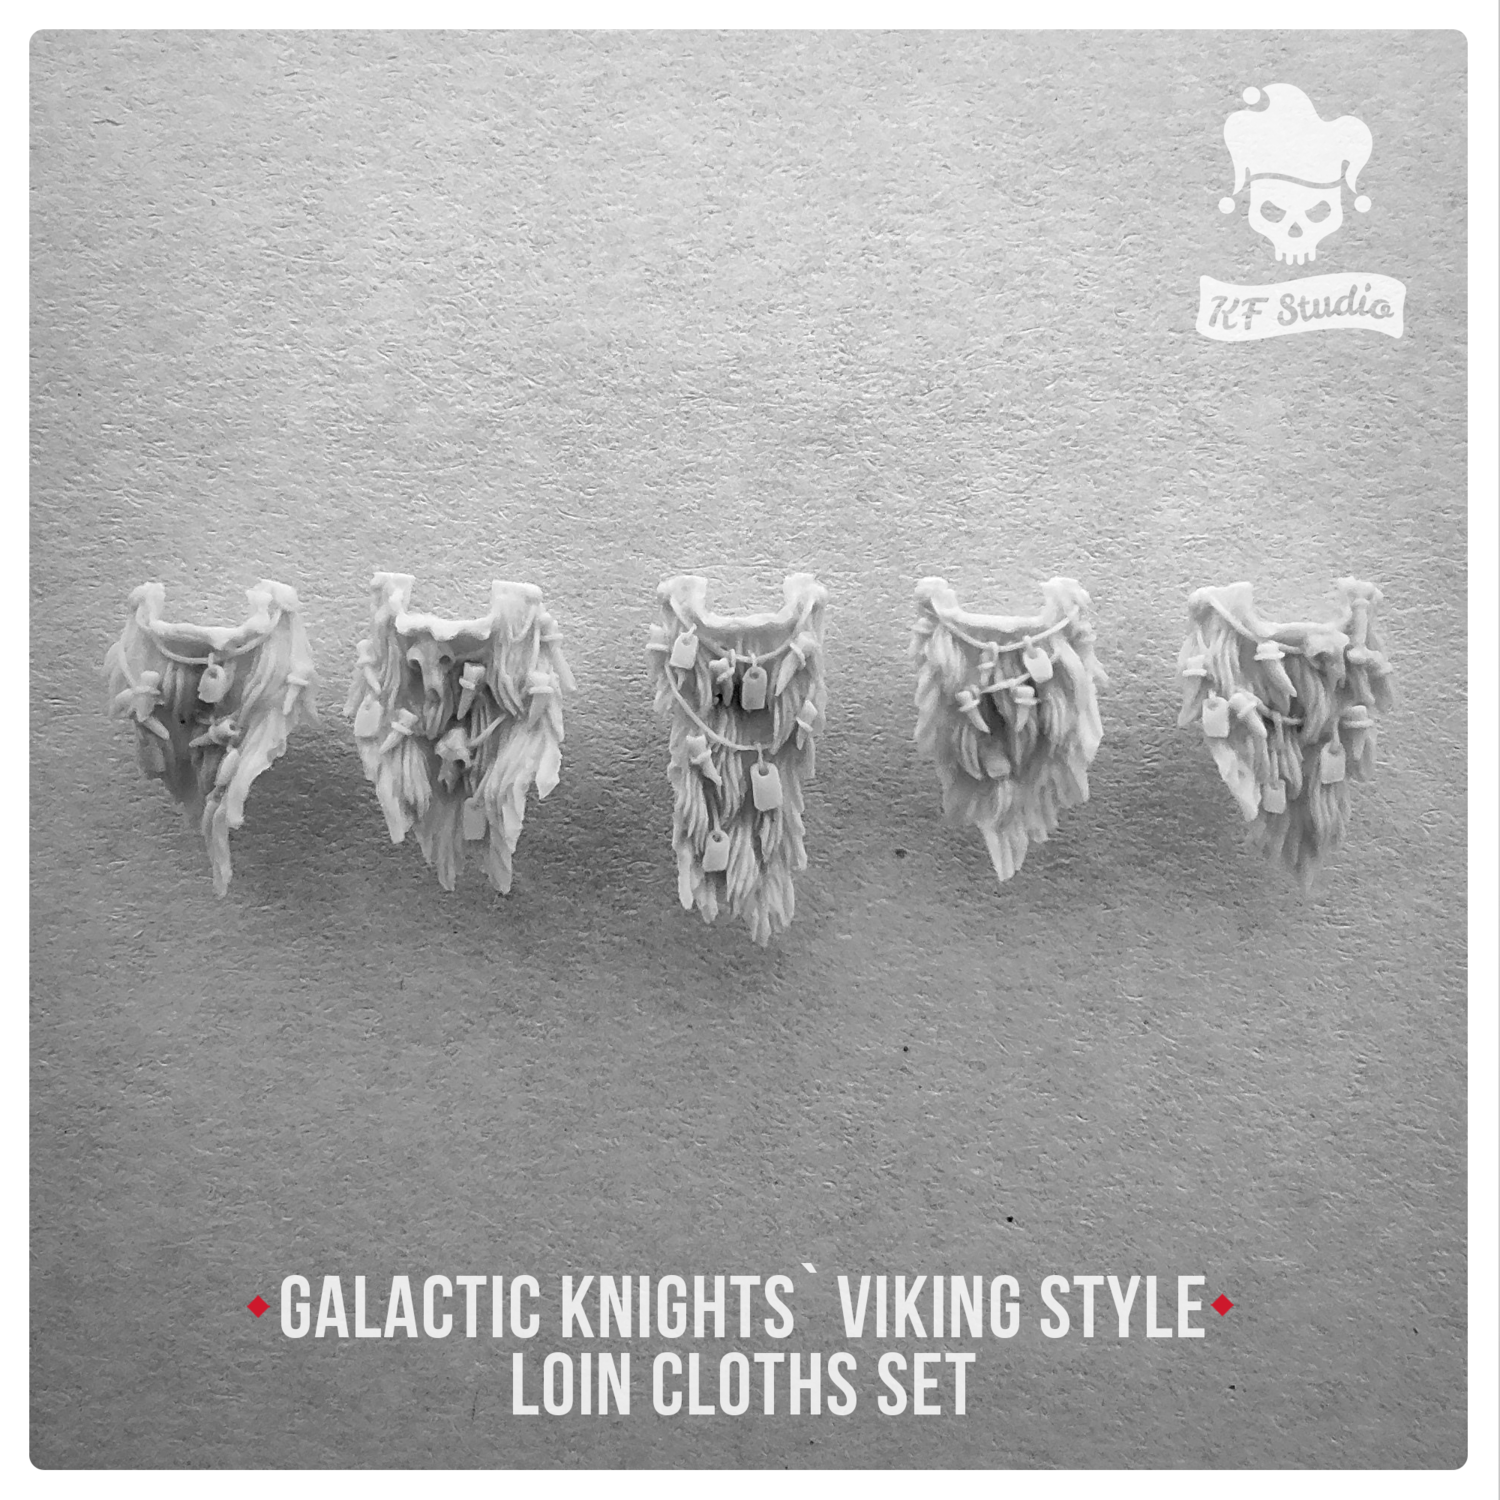 Galactic Knights Viking Style Loin cloths by KFStudio